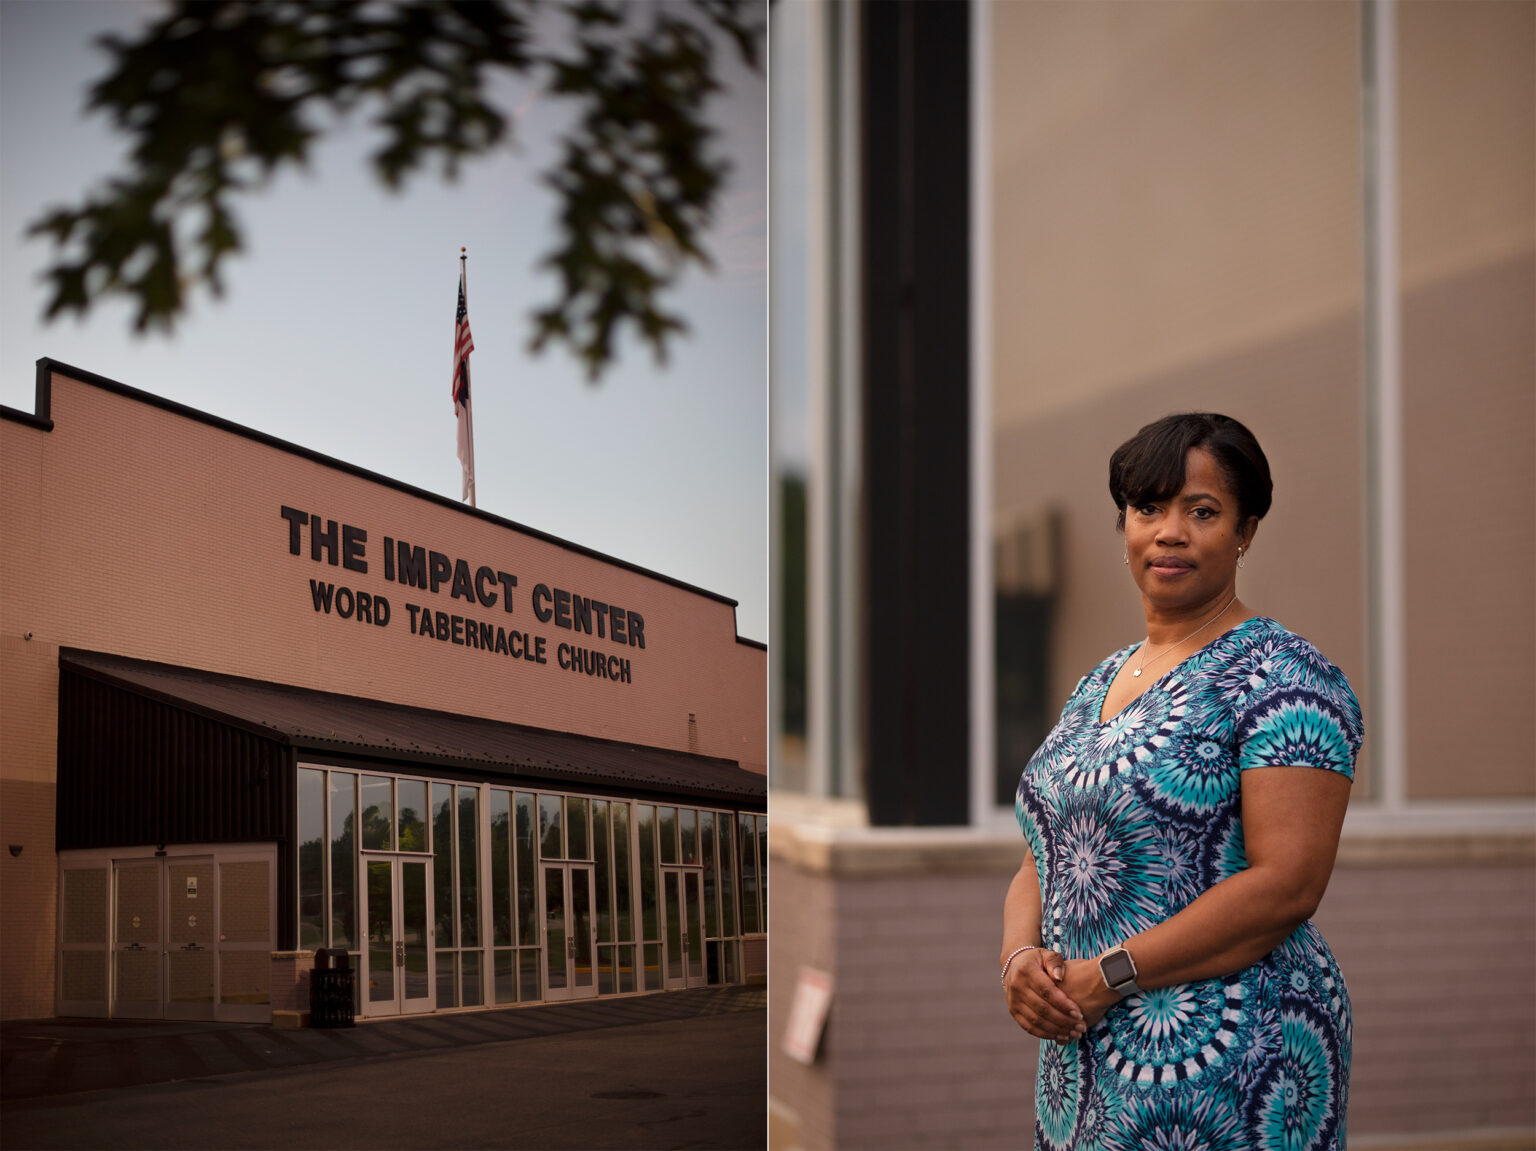 On the left, the exterior of the Impact Center. On the right, Lori Carter-Edwards poses for a photo.